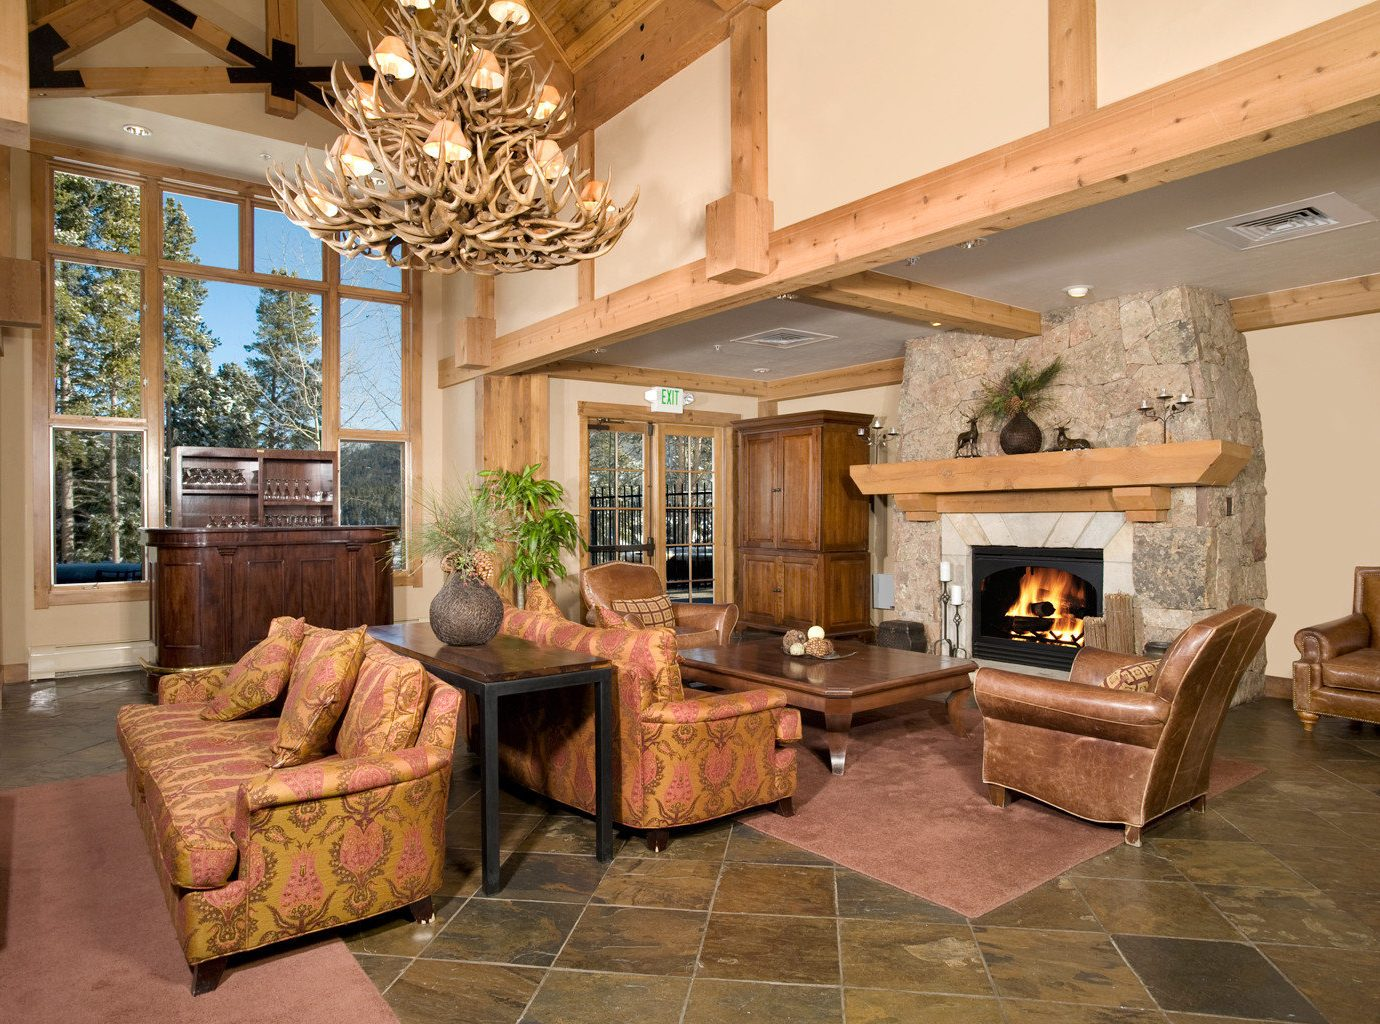 Bar Fireplace Lodge Lounge Rustic Scenic views sofa living room property home fire house hardwood cottage mansion Villa farmhouse wood flooring